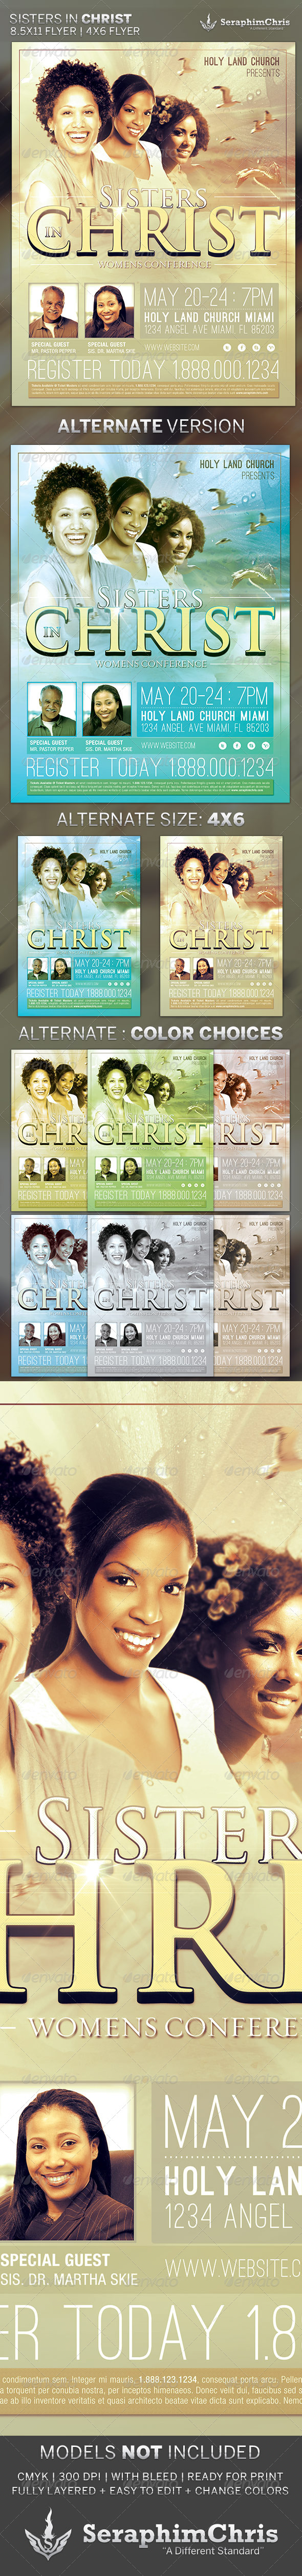 Sisters in Christ: Church Flyer Template - Church Flyers